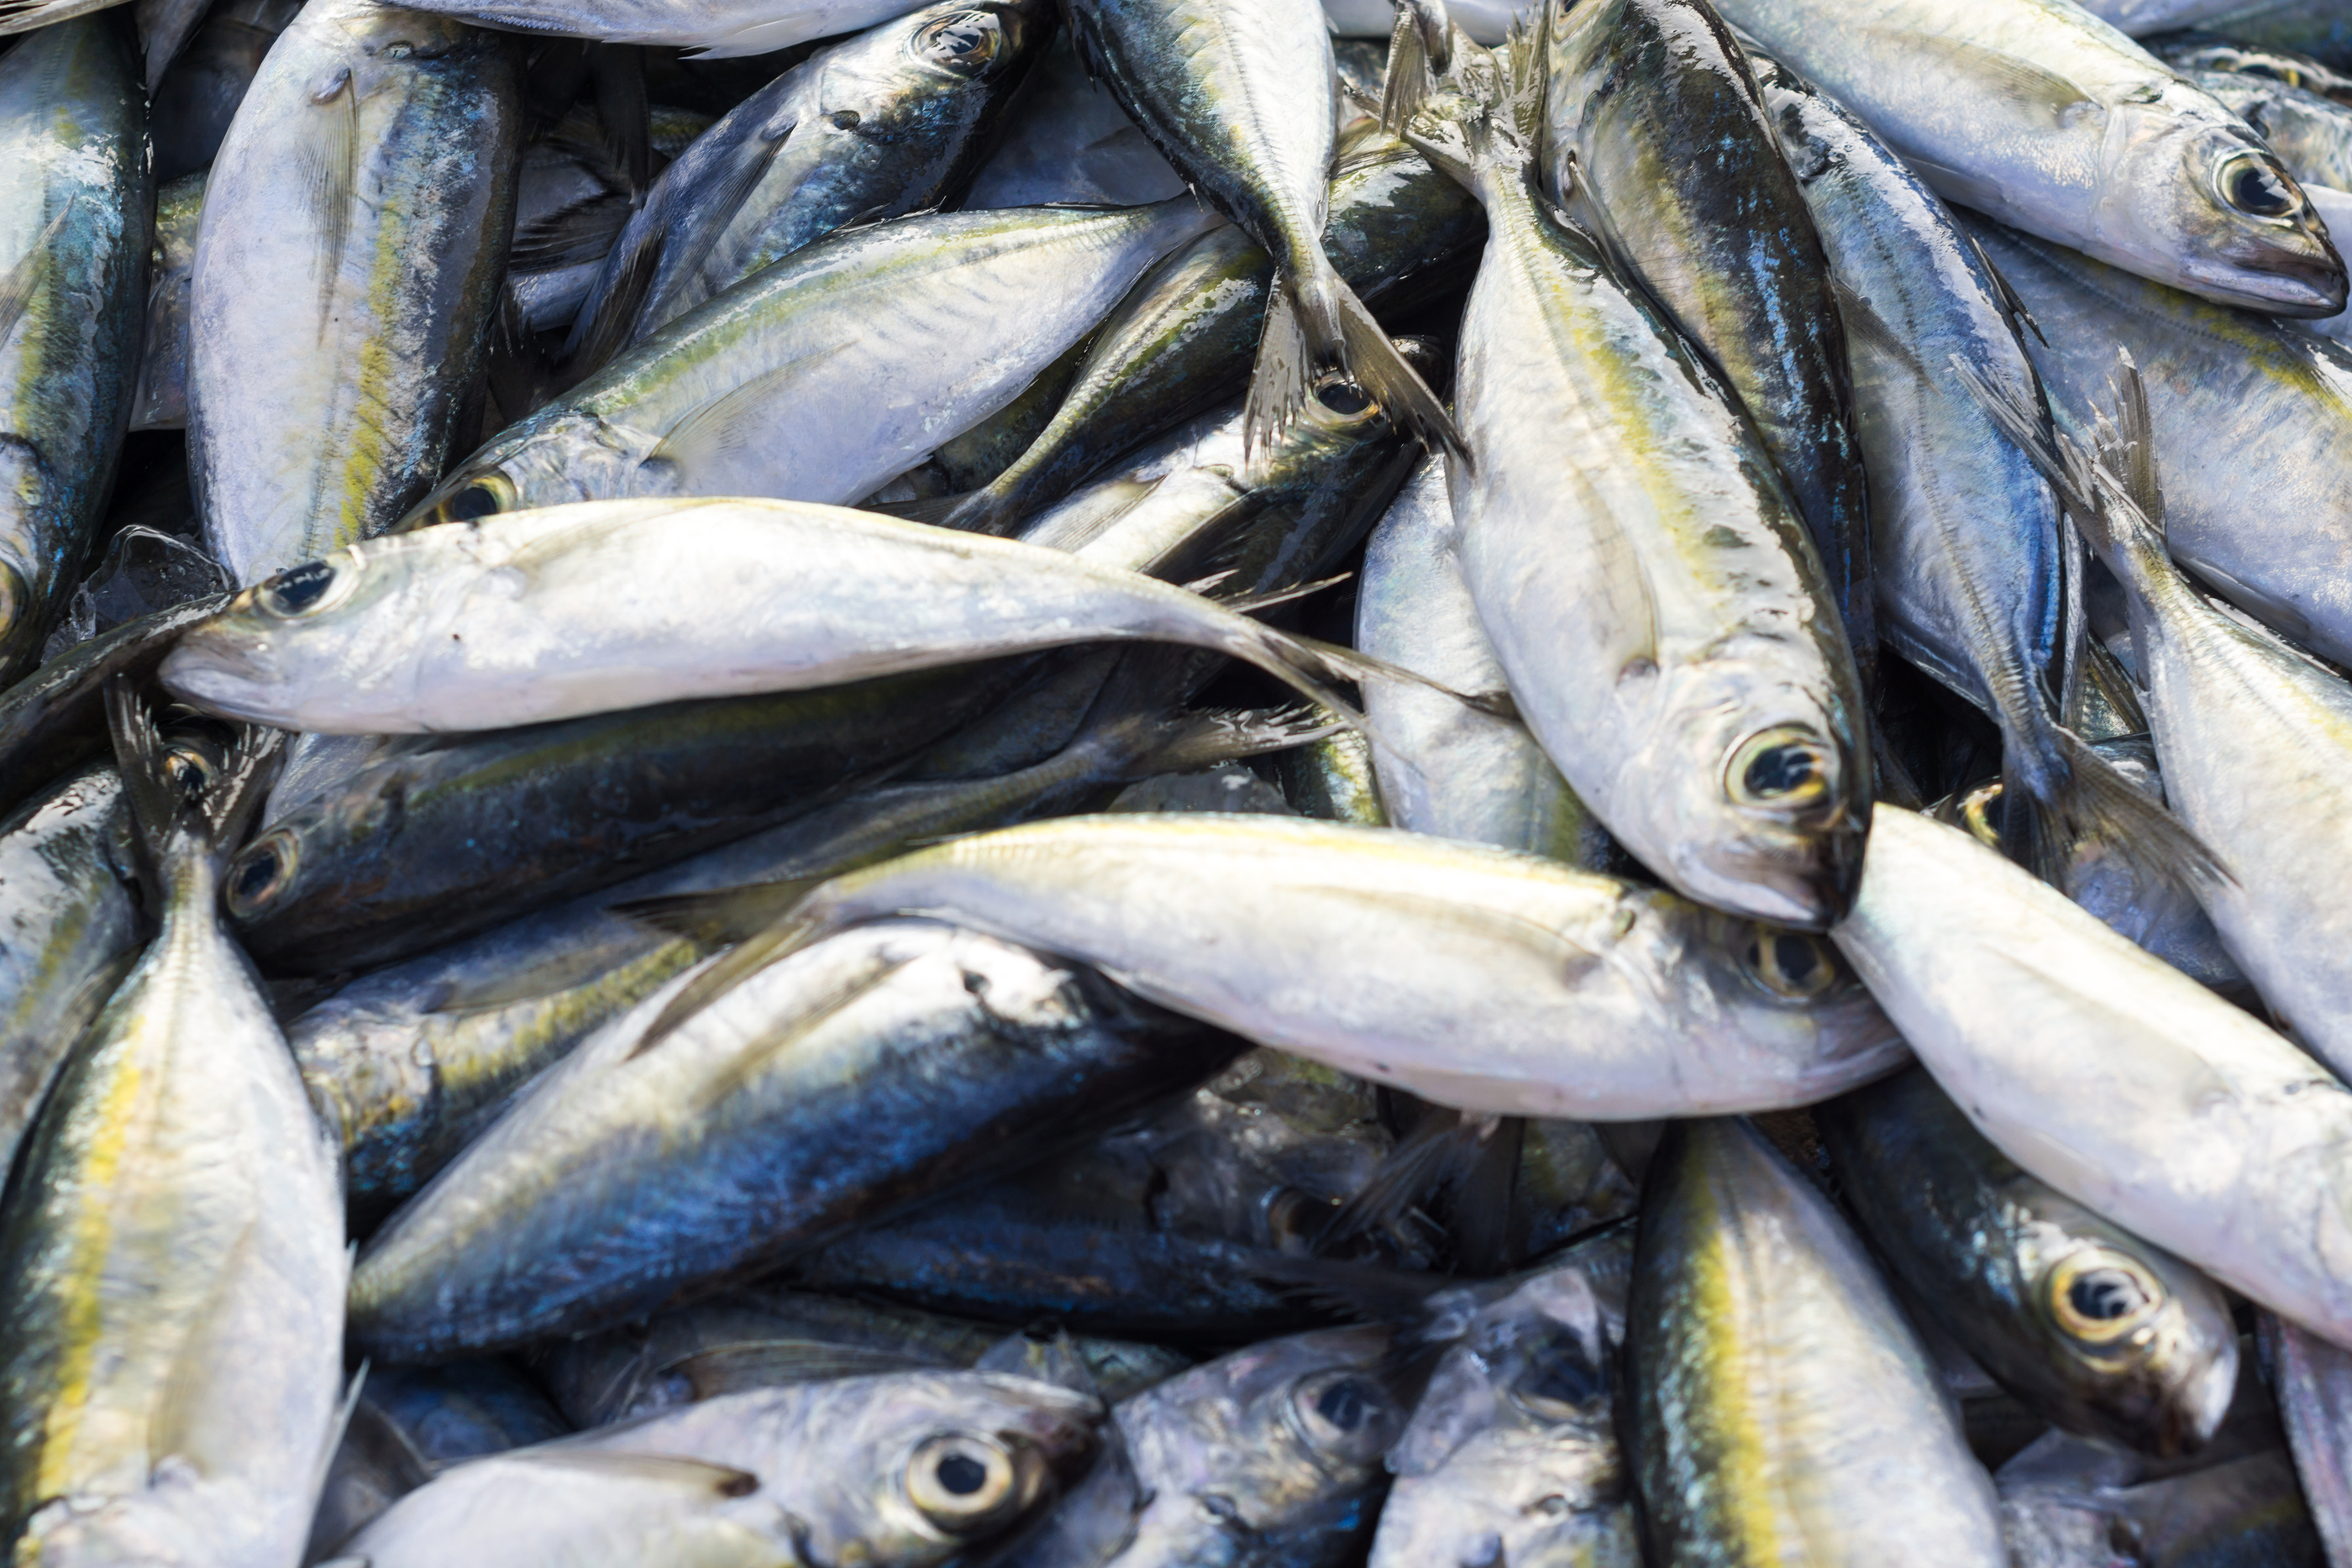 Fresh Raw Mackerel Fish In Market